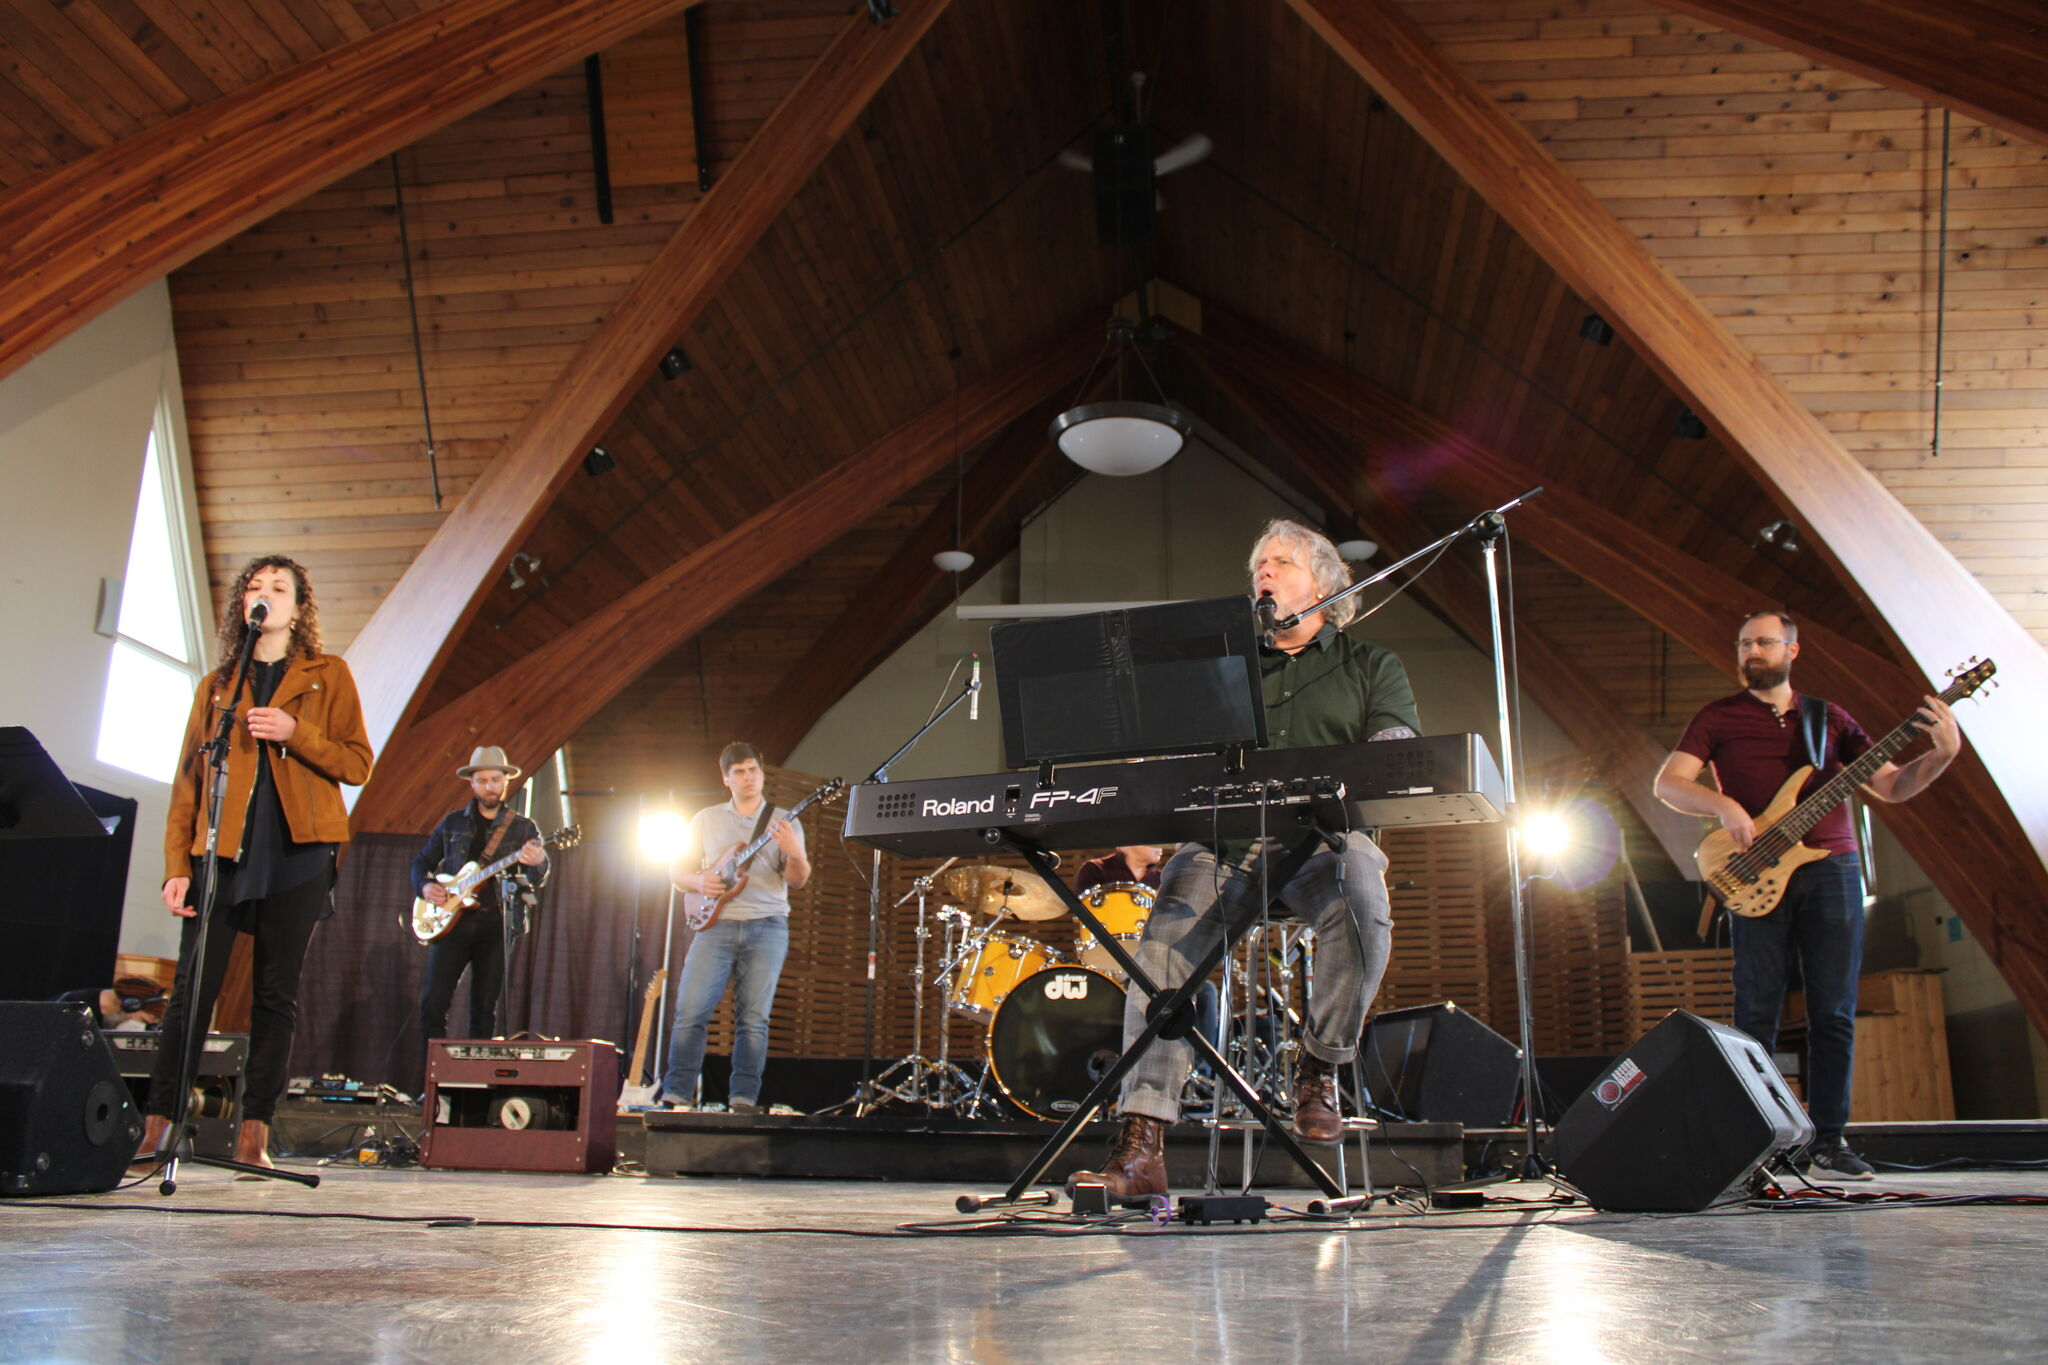 Danny Plett and other musicians recorded music Saturday at the Mennonite Heritage Village auditorium for the April 5 concert.